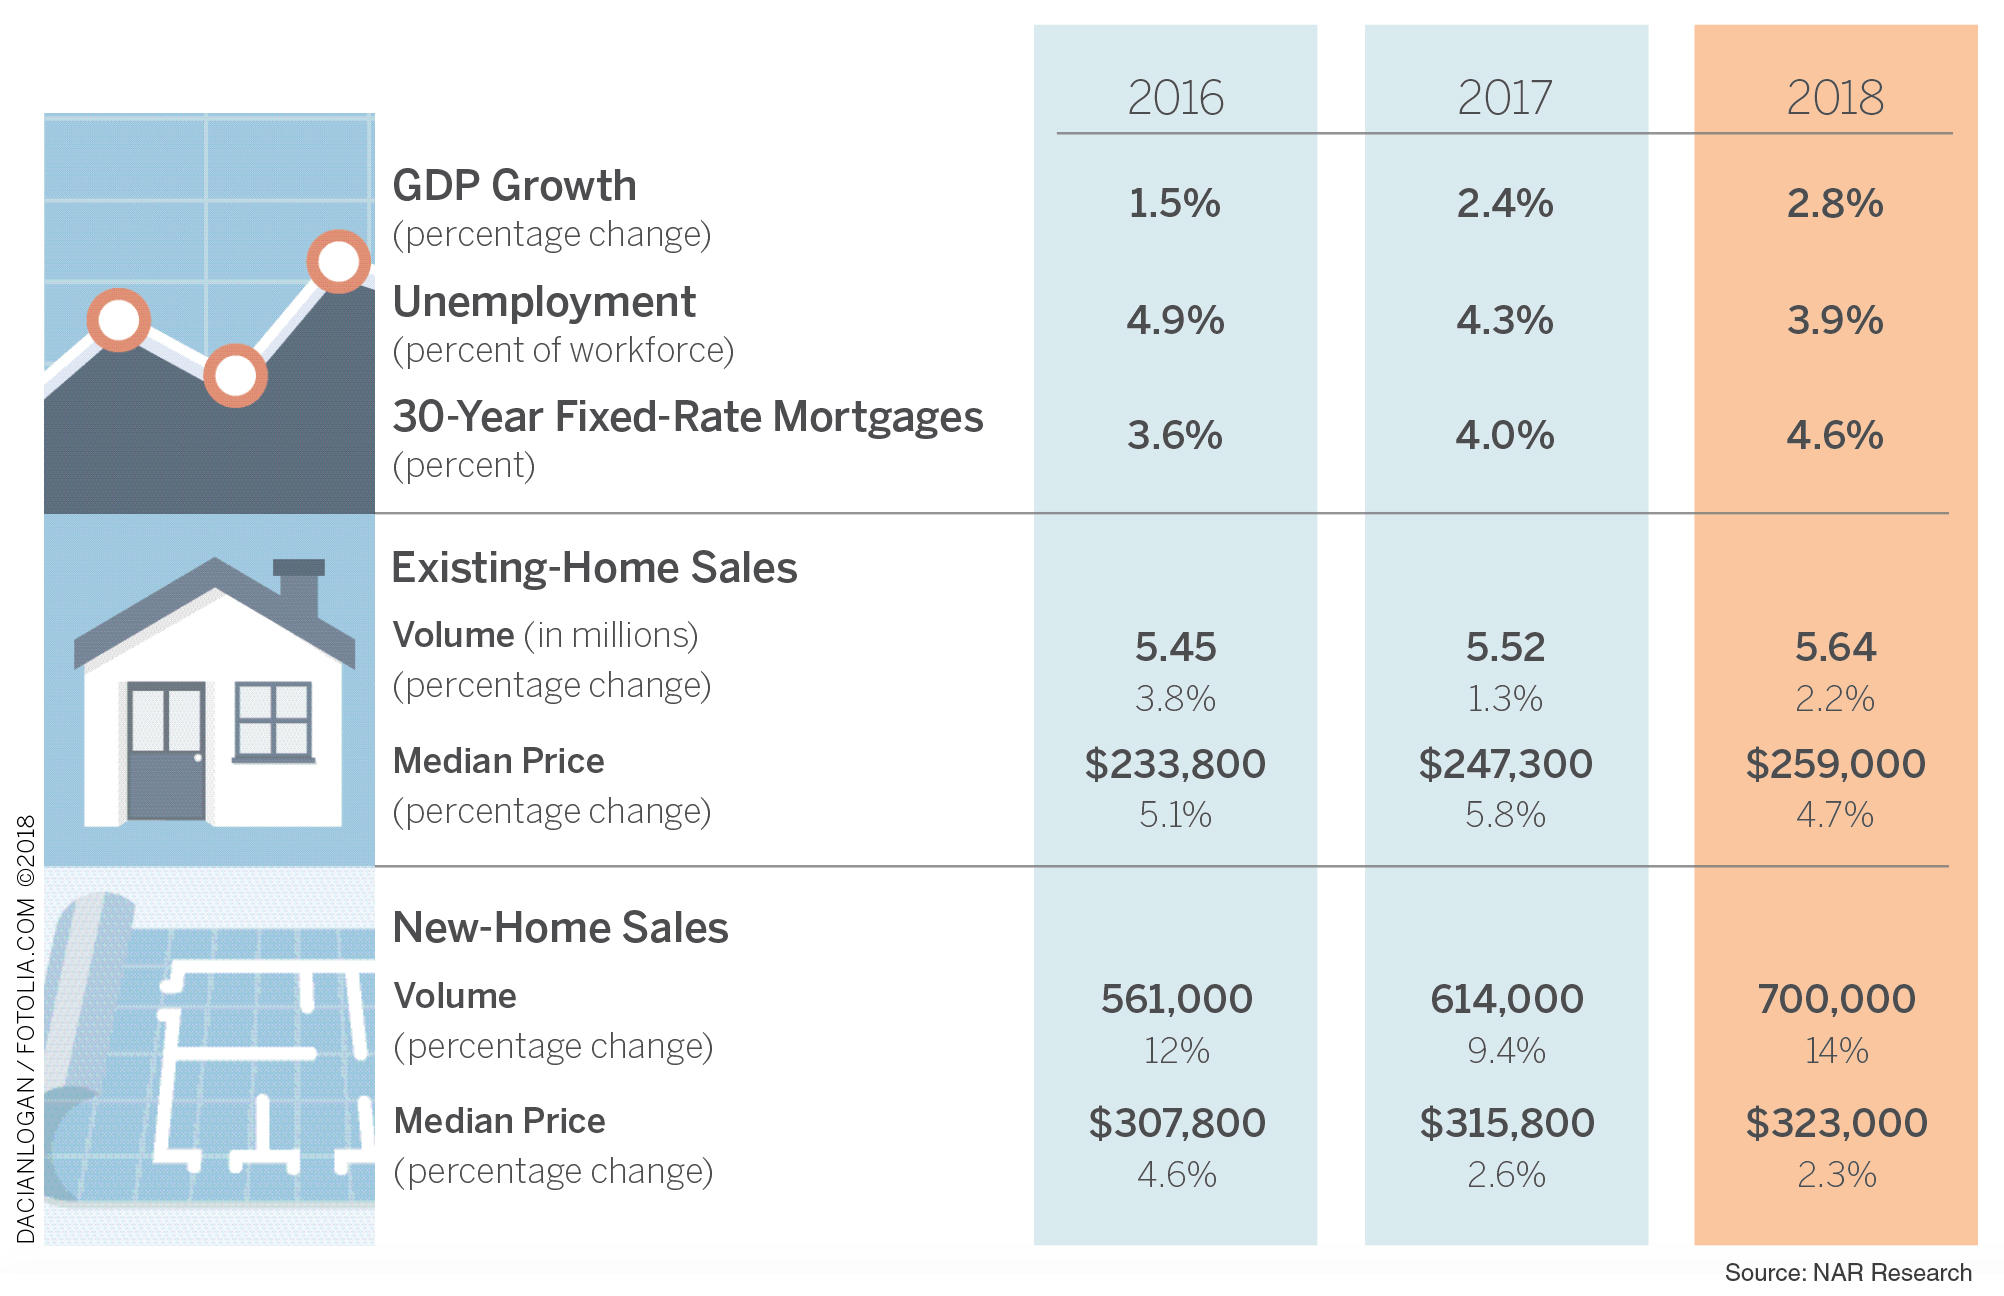 2018 Economic Outlook: Conflicting Signals